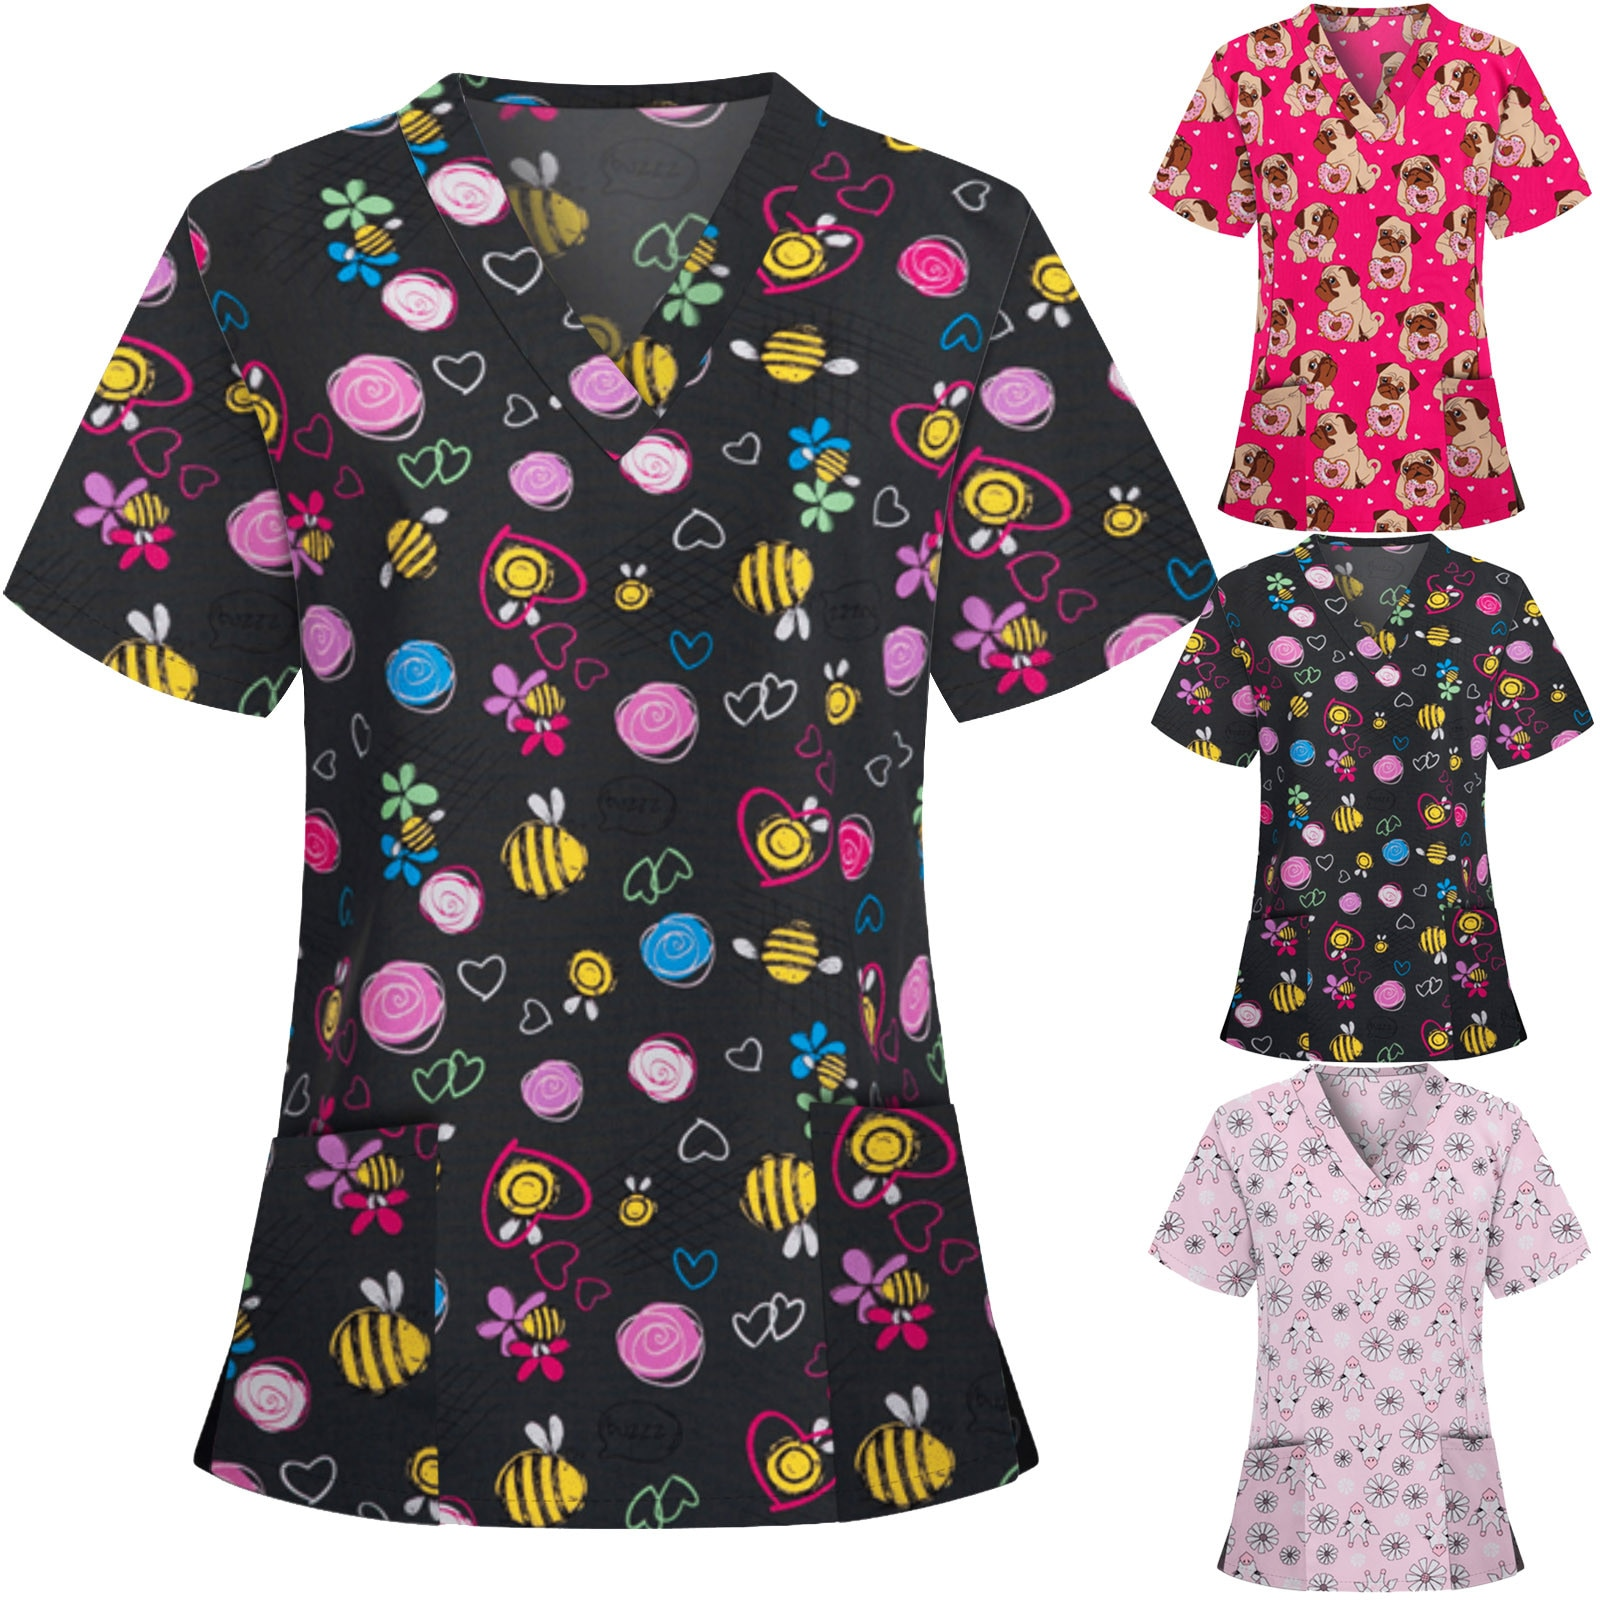 Ladies Animal Print Casual Short-Sleeved V-neck Care Work Tops 2021 Summer Plus Size Sexy Nurse Unif